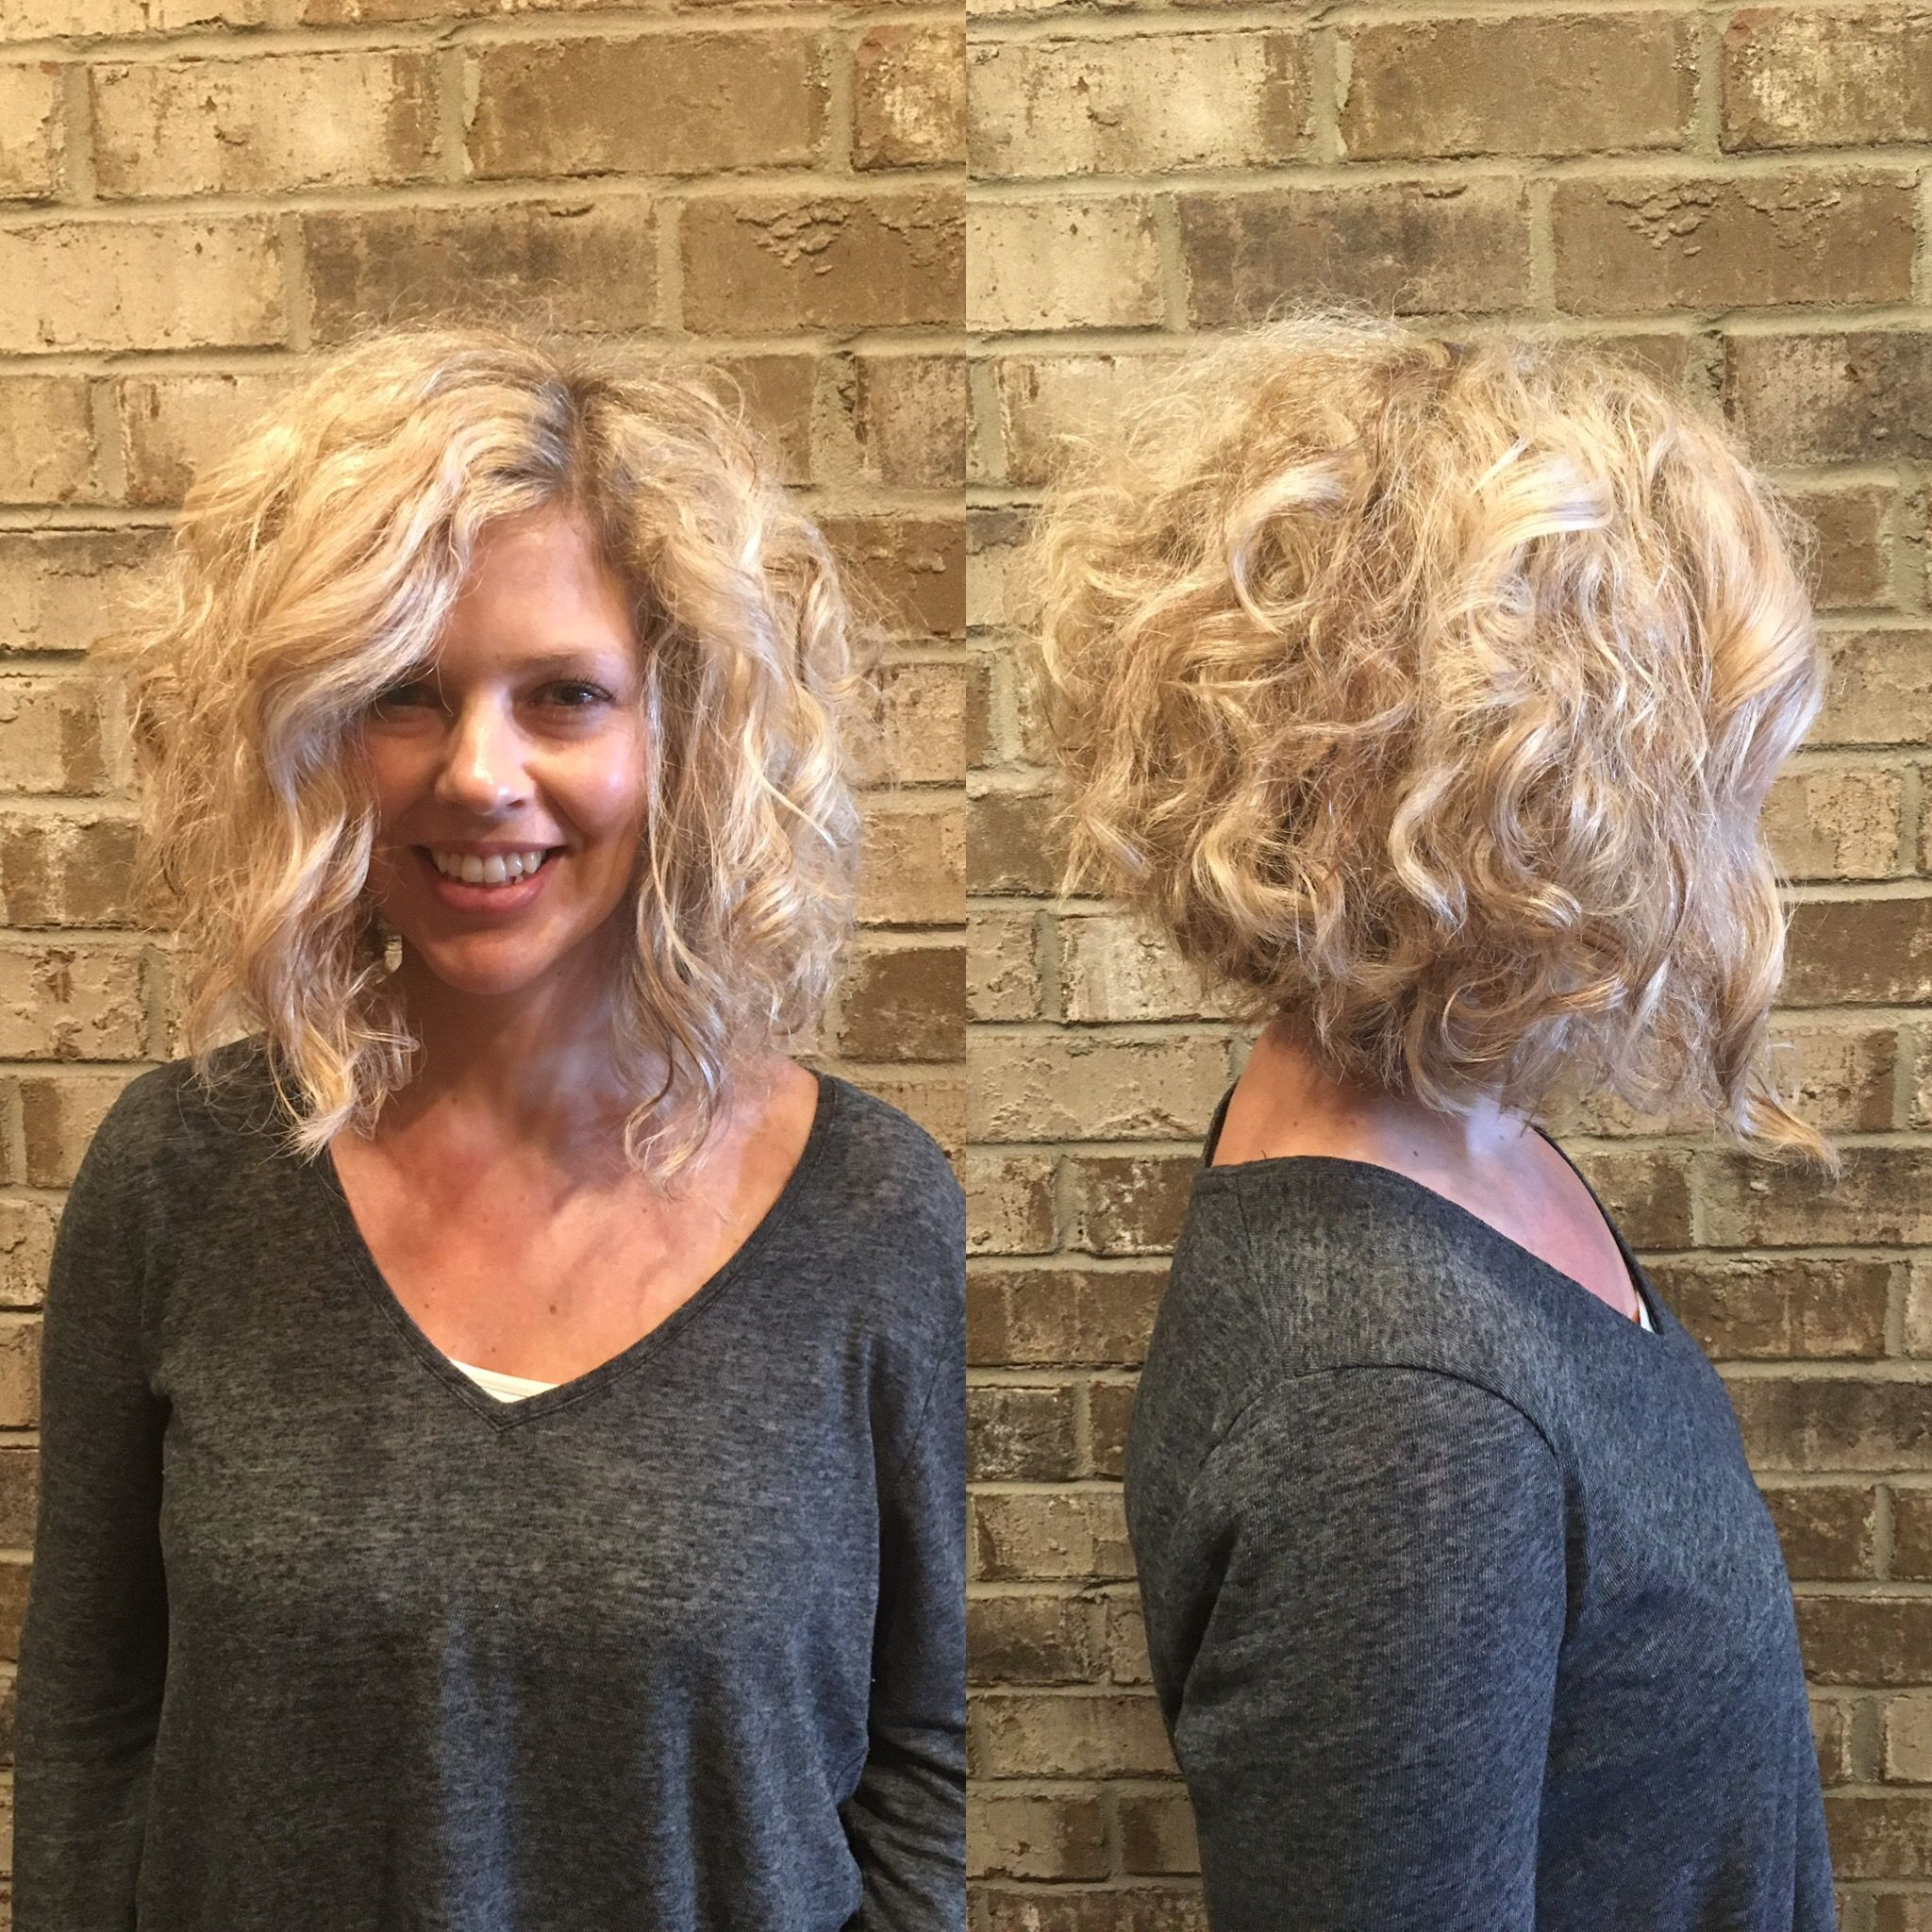 Blonde curly inverted bob by stylist Misty Callaway Cheveux salon